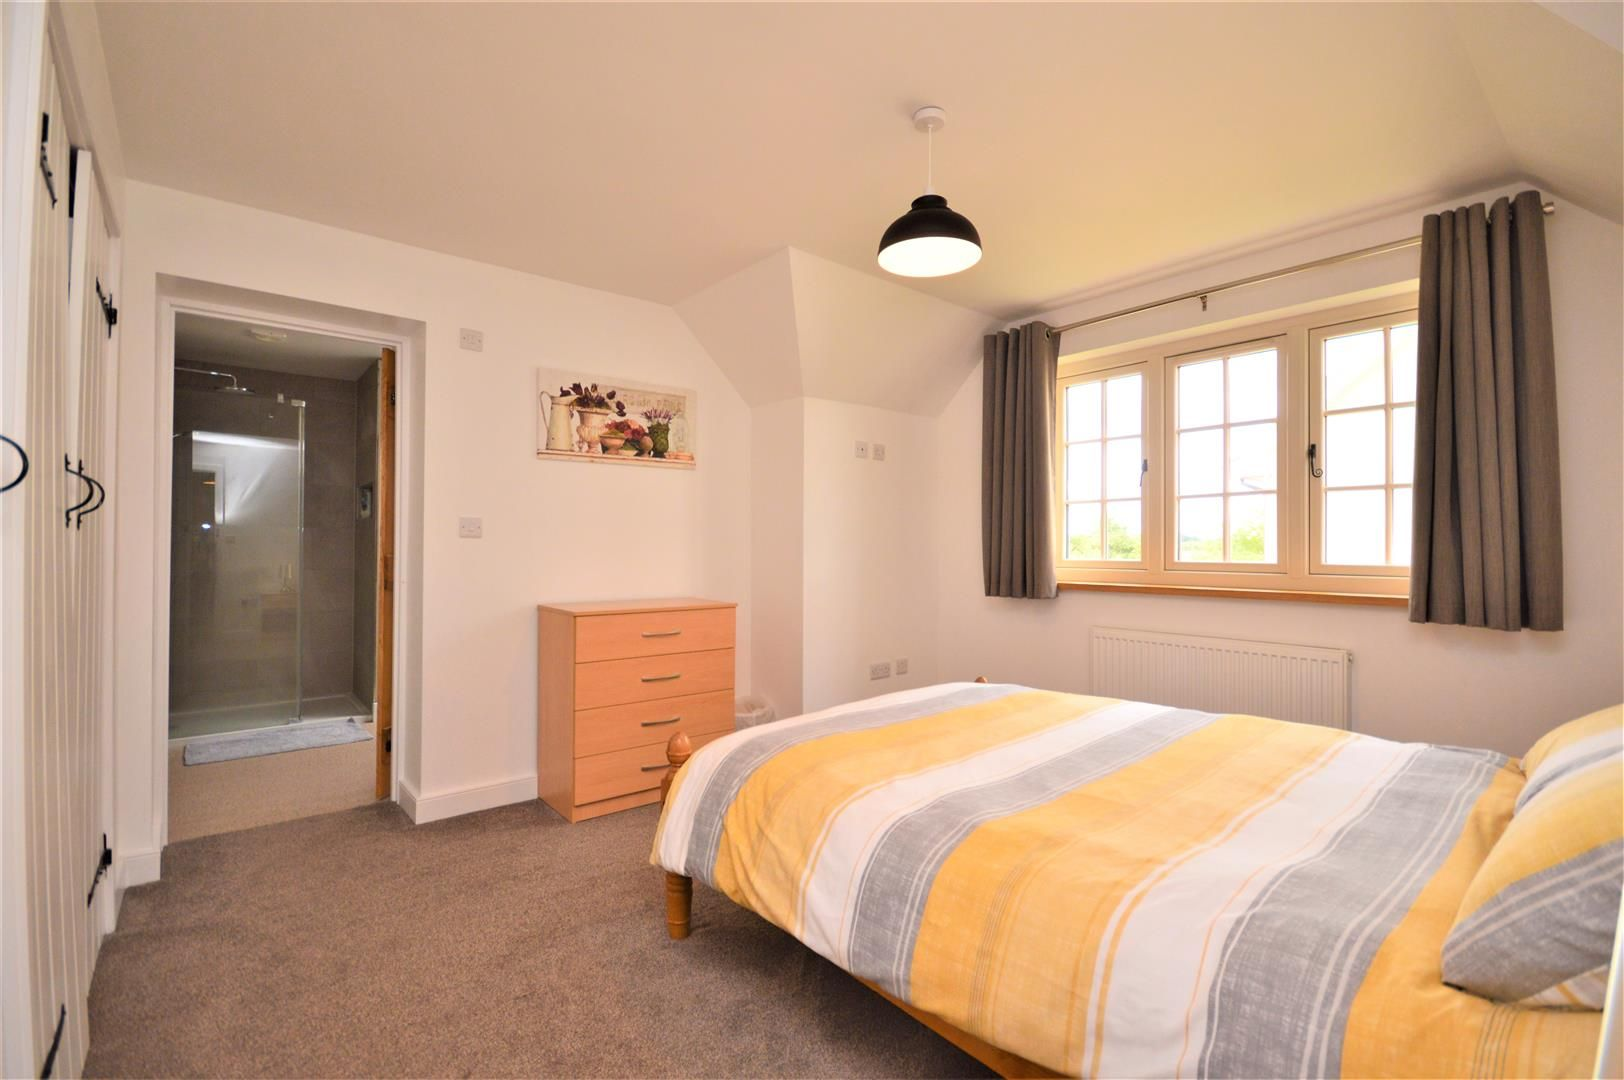 4 bed detached for sale in Marden 12